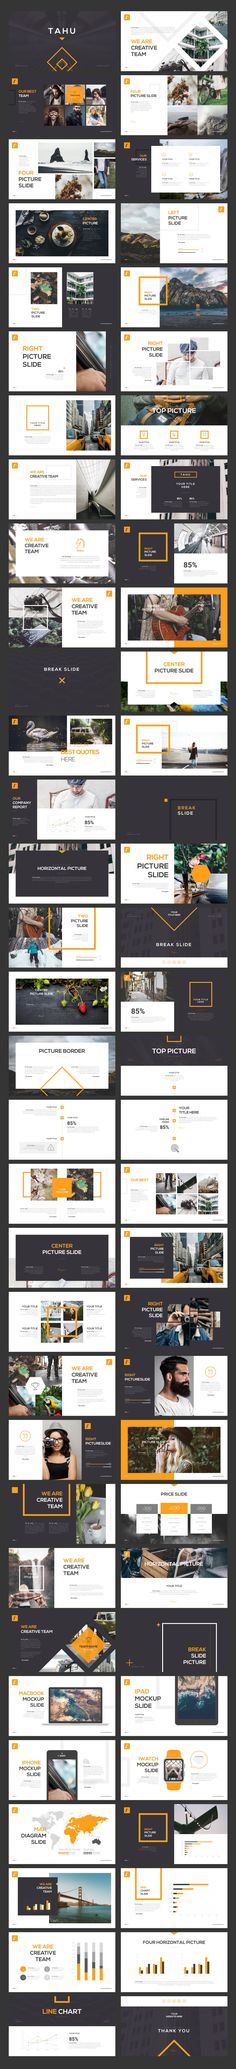 TAHU Keynote Template by Angkalimabelas on @creativemarket                                                                                                                                                                                 More